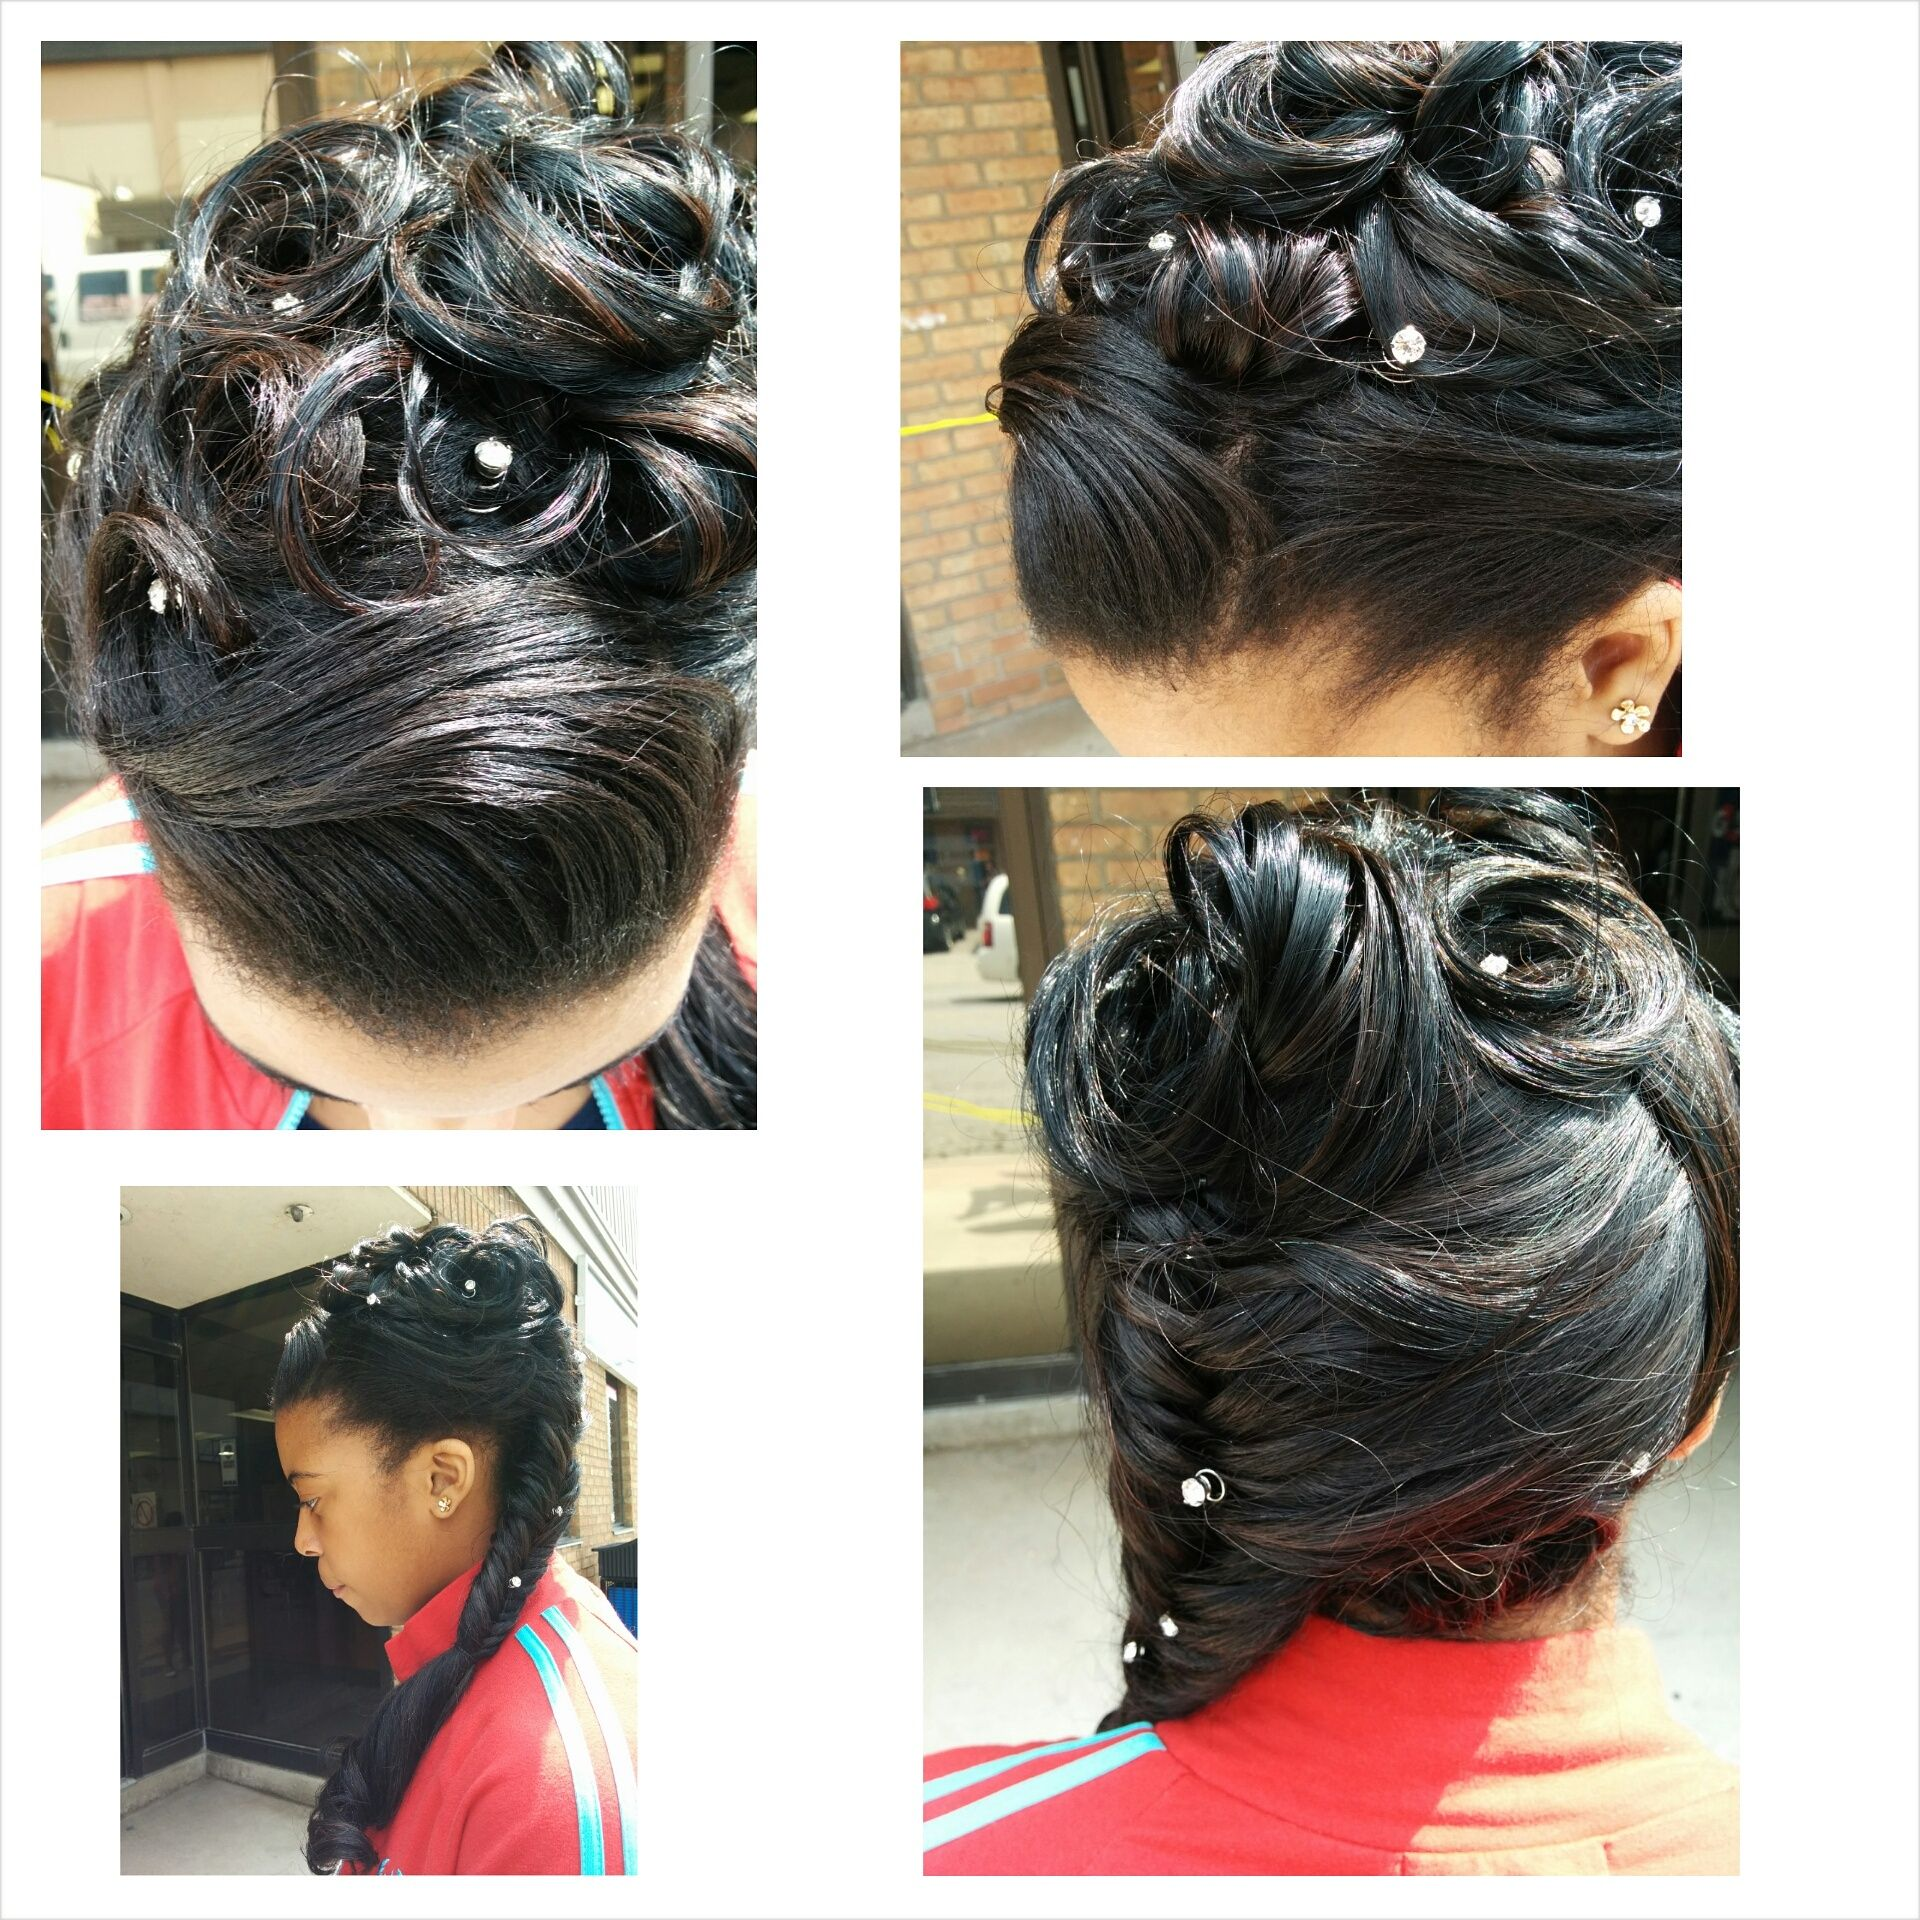 Extensions And Updo Prom Grad Hair Plus More At Entice Salon 311